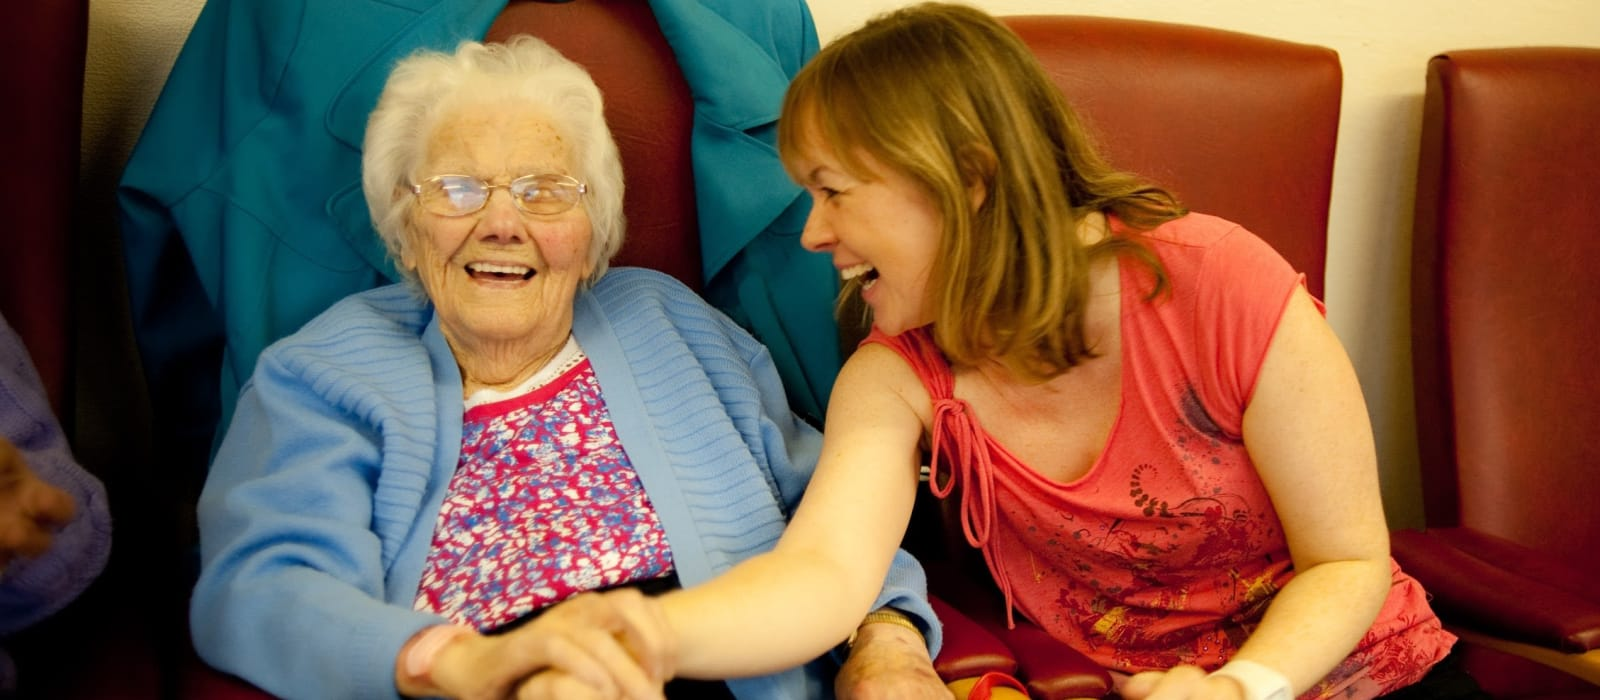 Rubicon dance leader with a participant during a seated session in a care home.